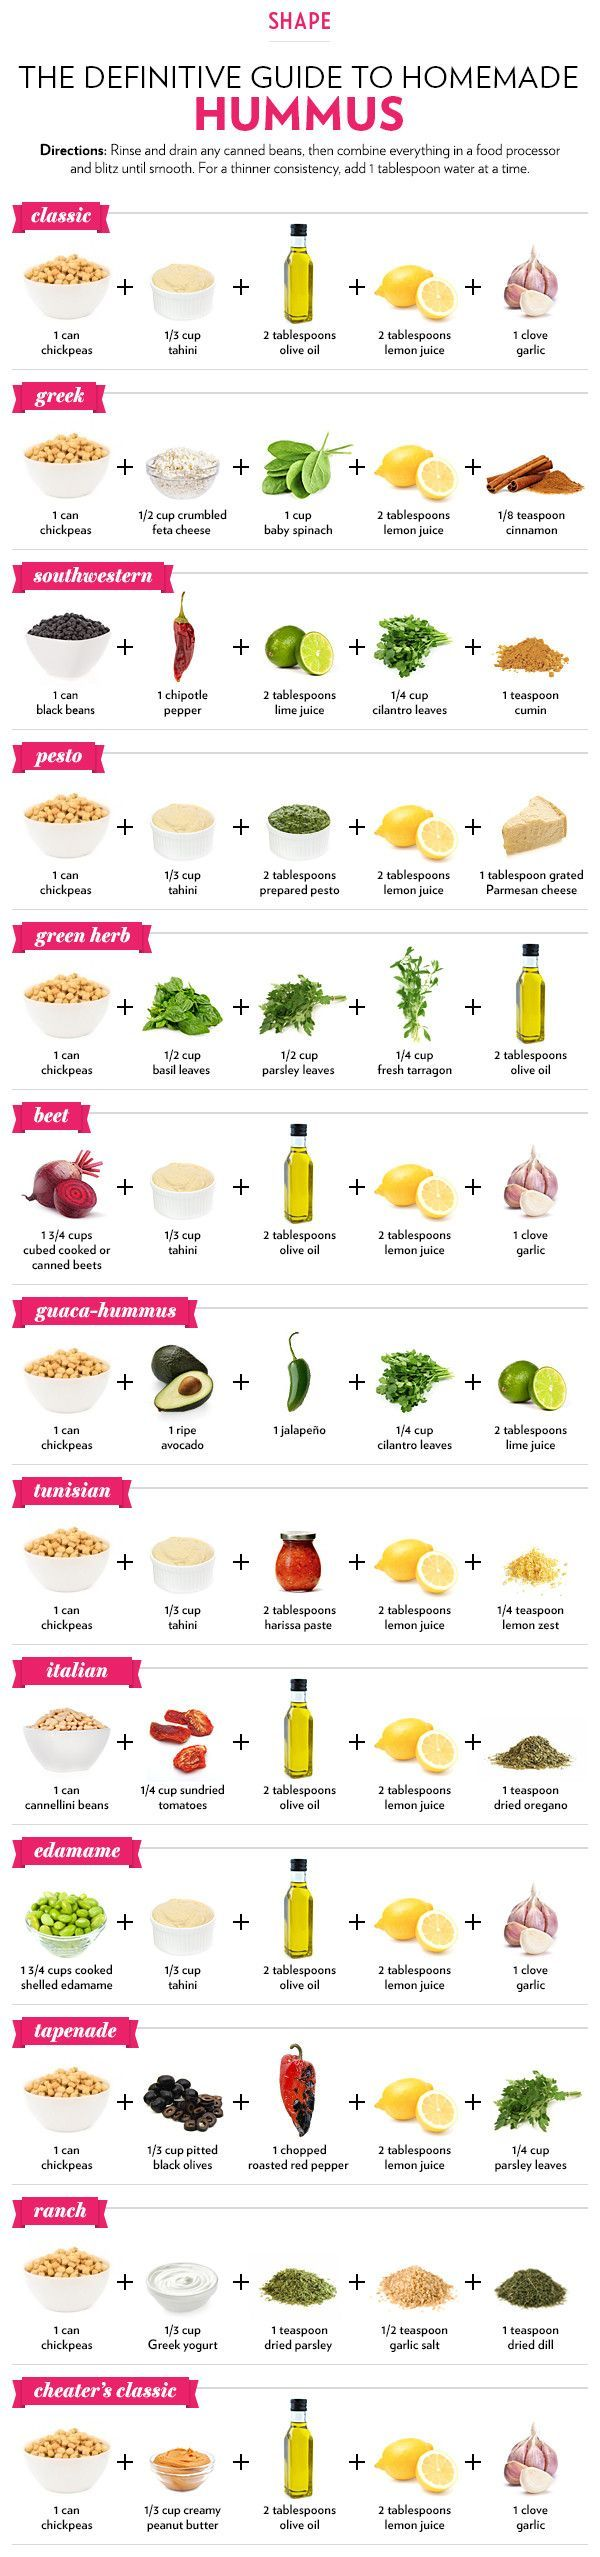 Homemade Hummus guide